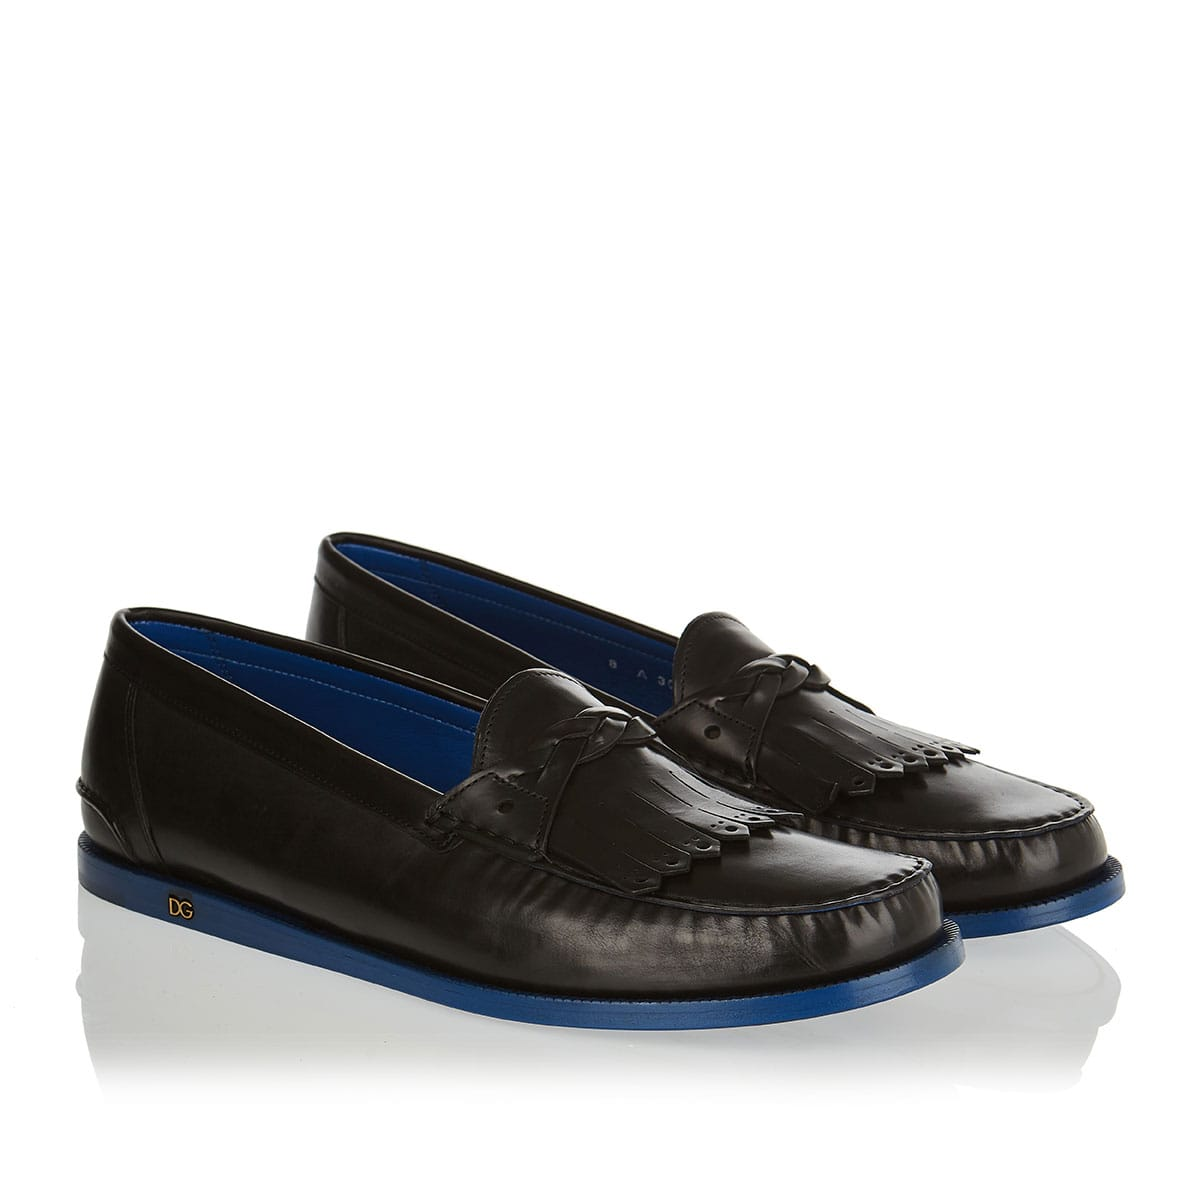 Two-tone leather loafers